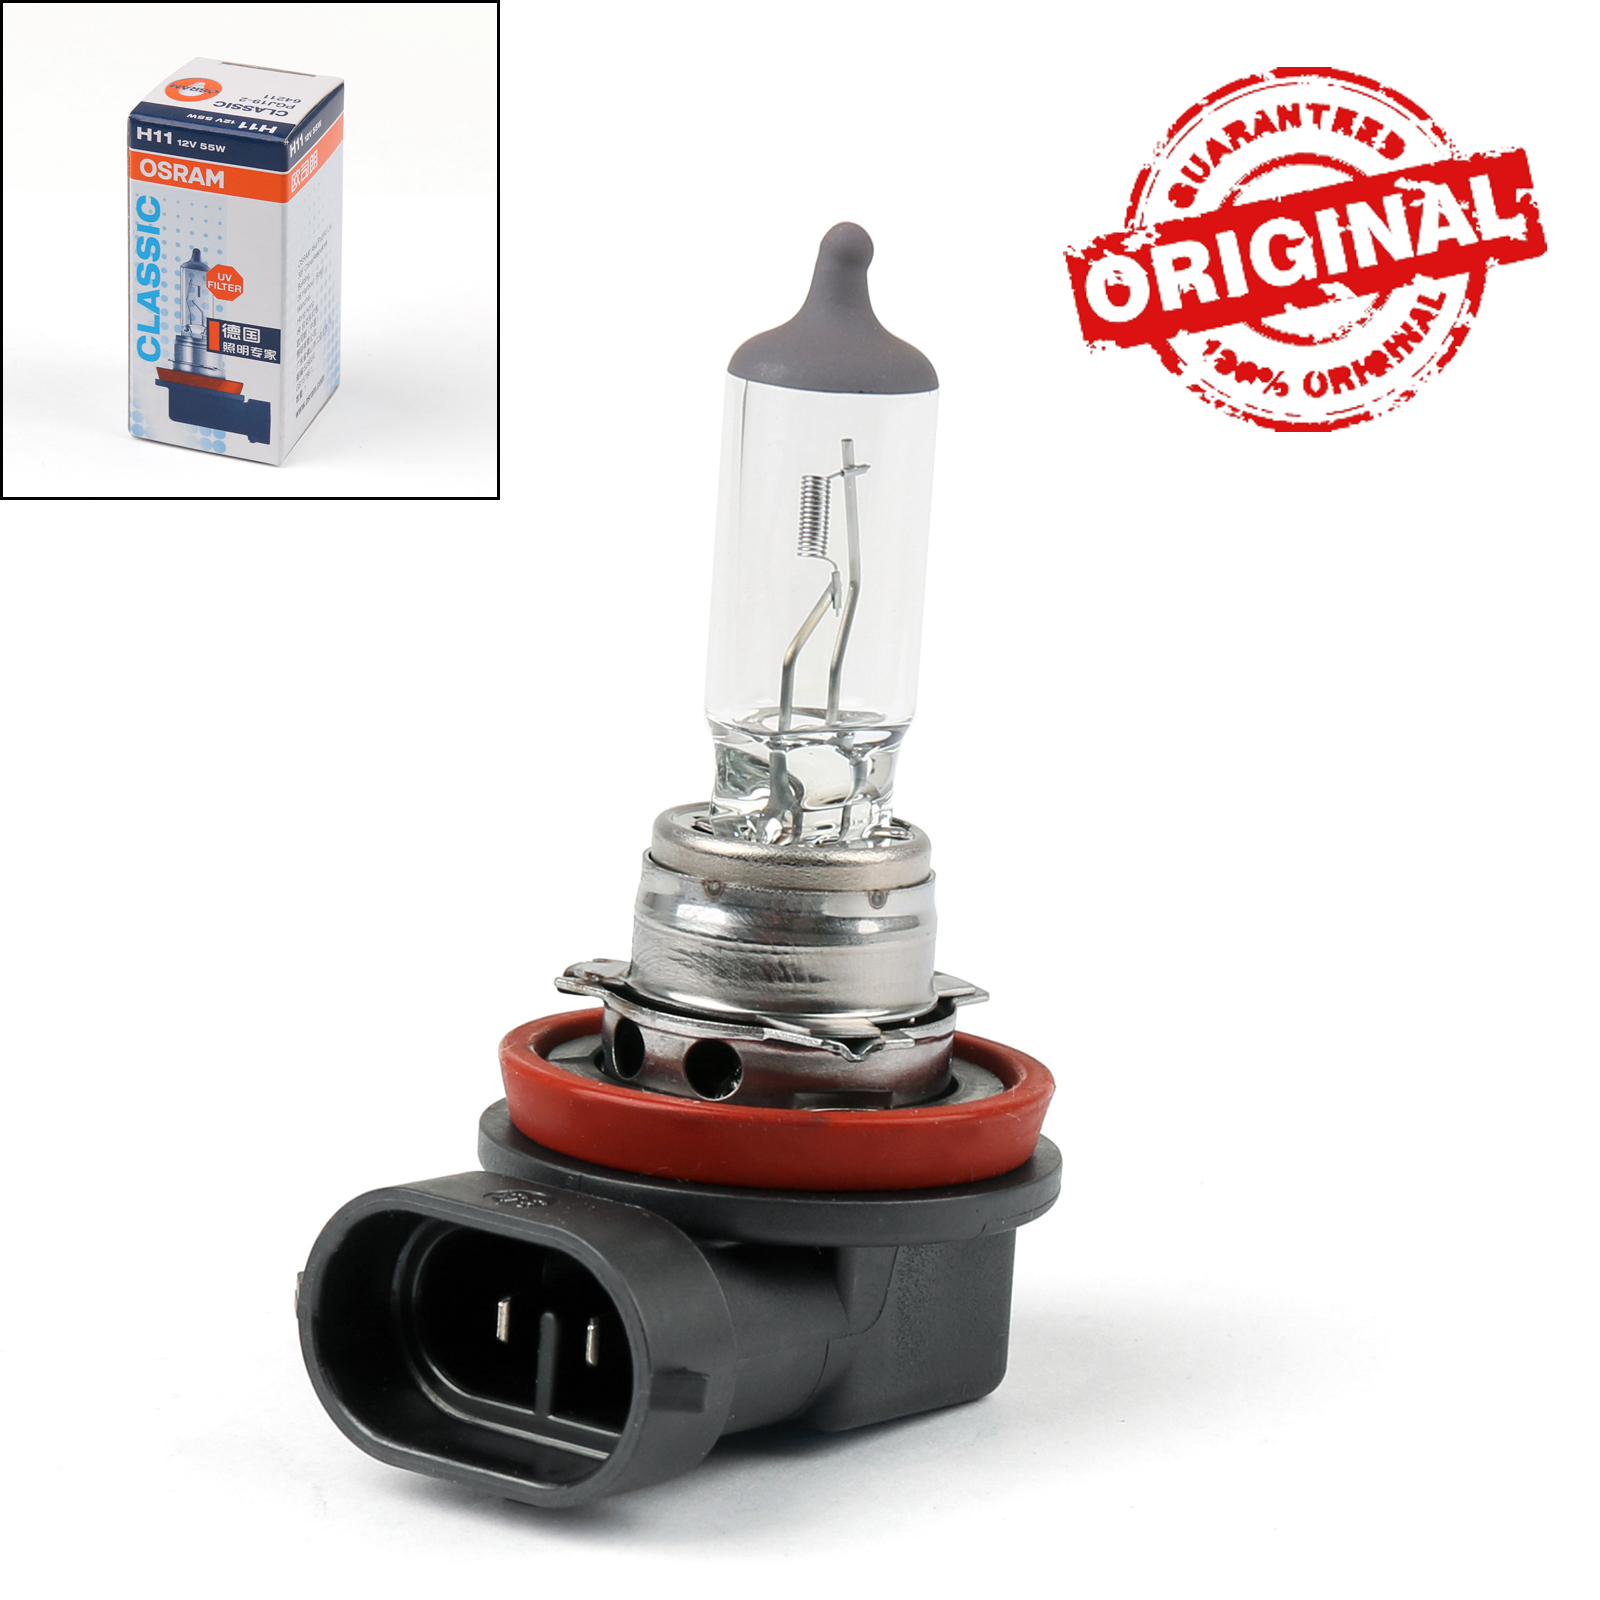 Headlight Bulb 64211 Osram H11 Genuine Top Quality Replacement New